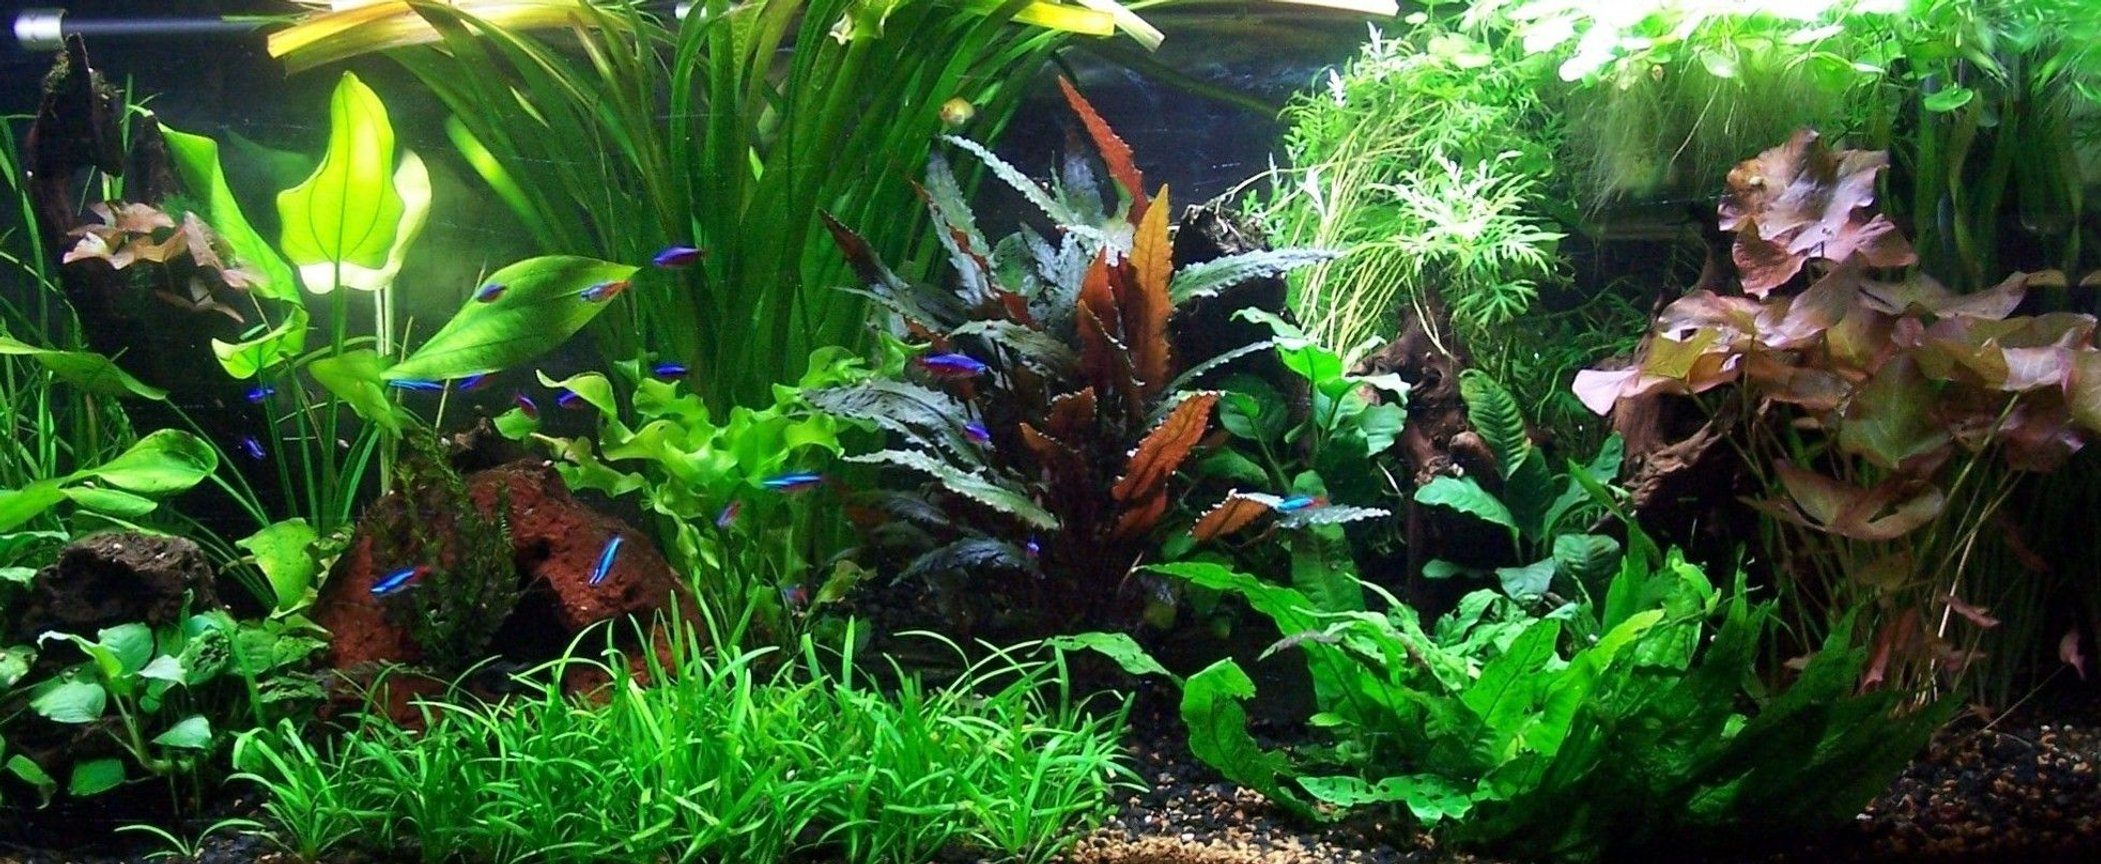 75 gallons freshwater fish tank (mostly fish and non-living decorations) - 06/04/08